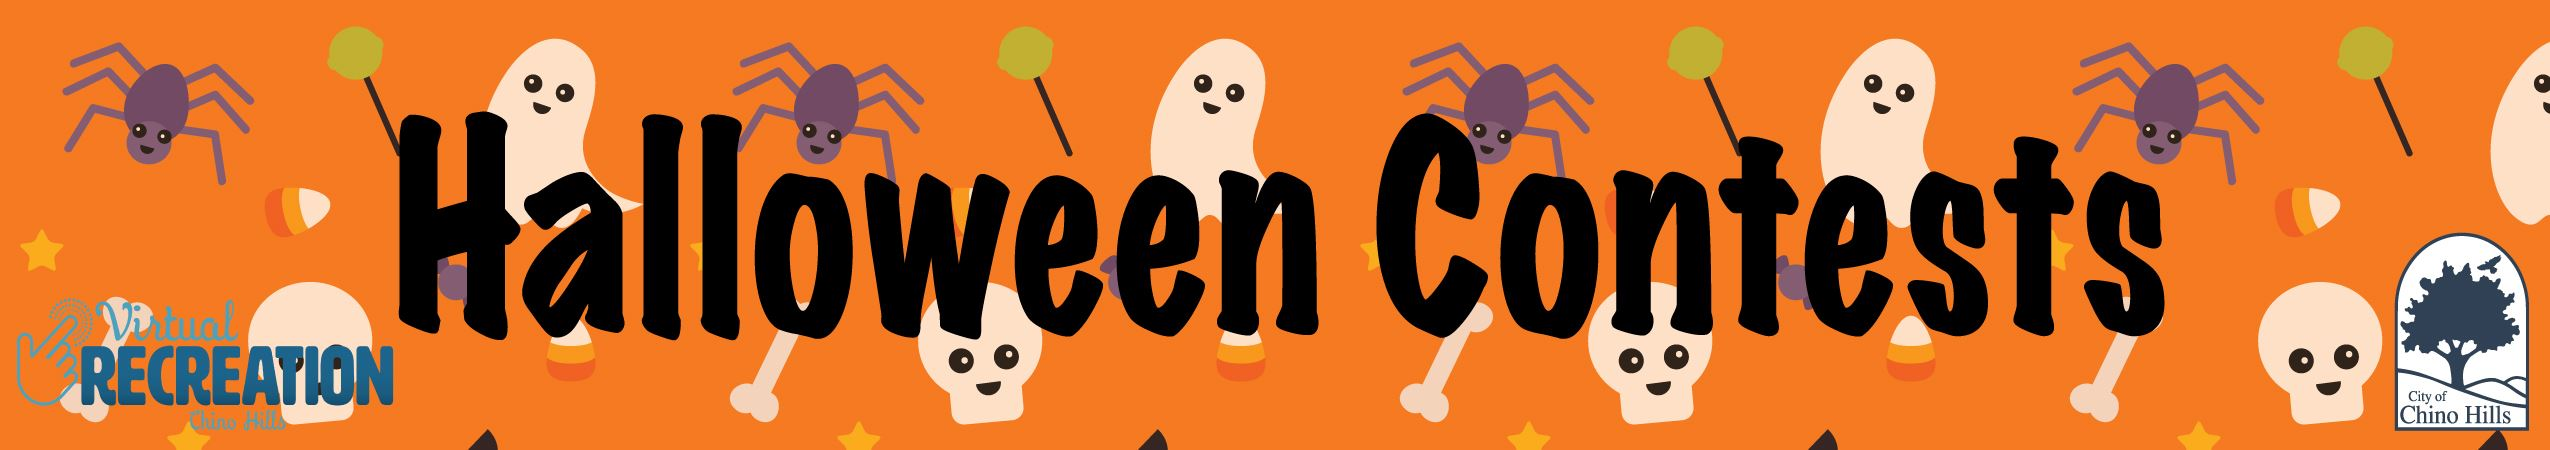 Web-Banner-Halloween-Contests